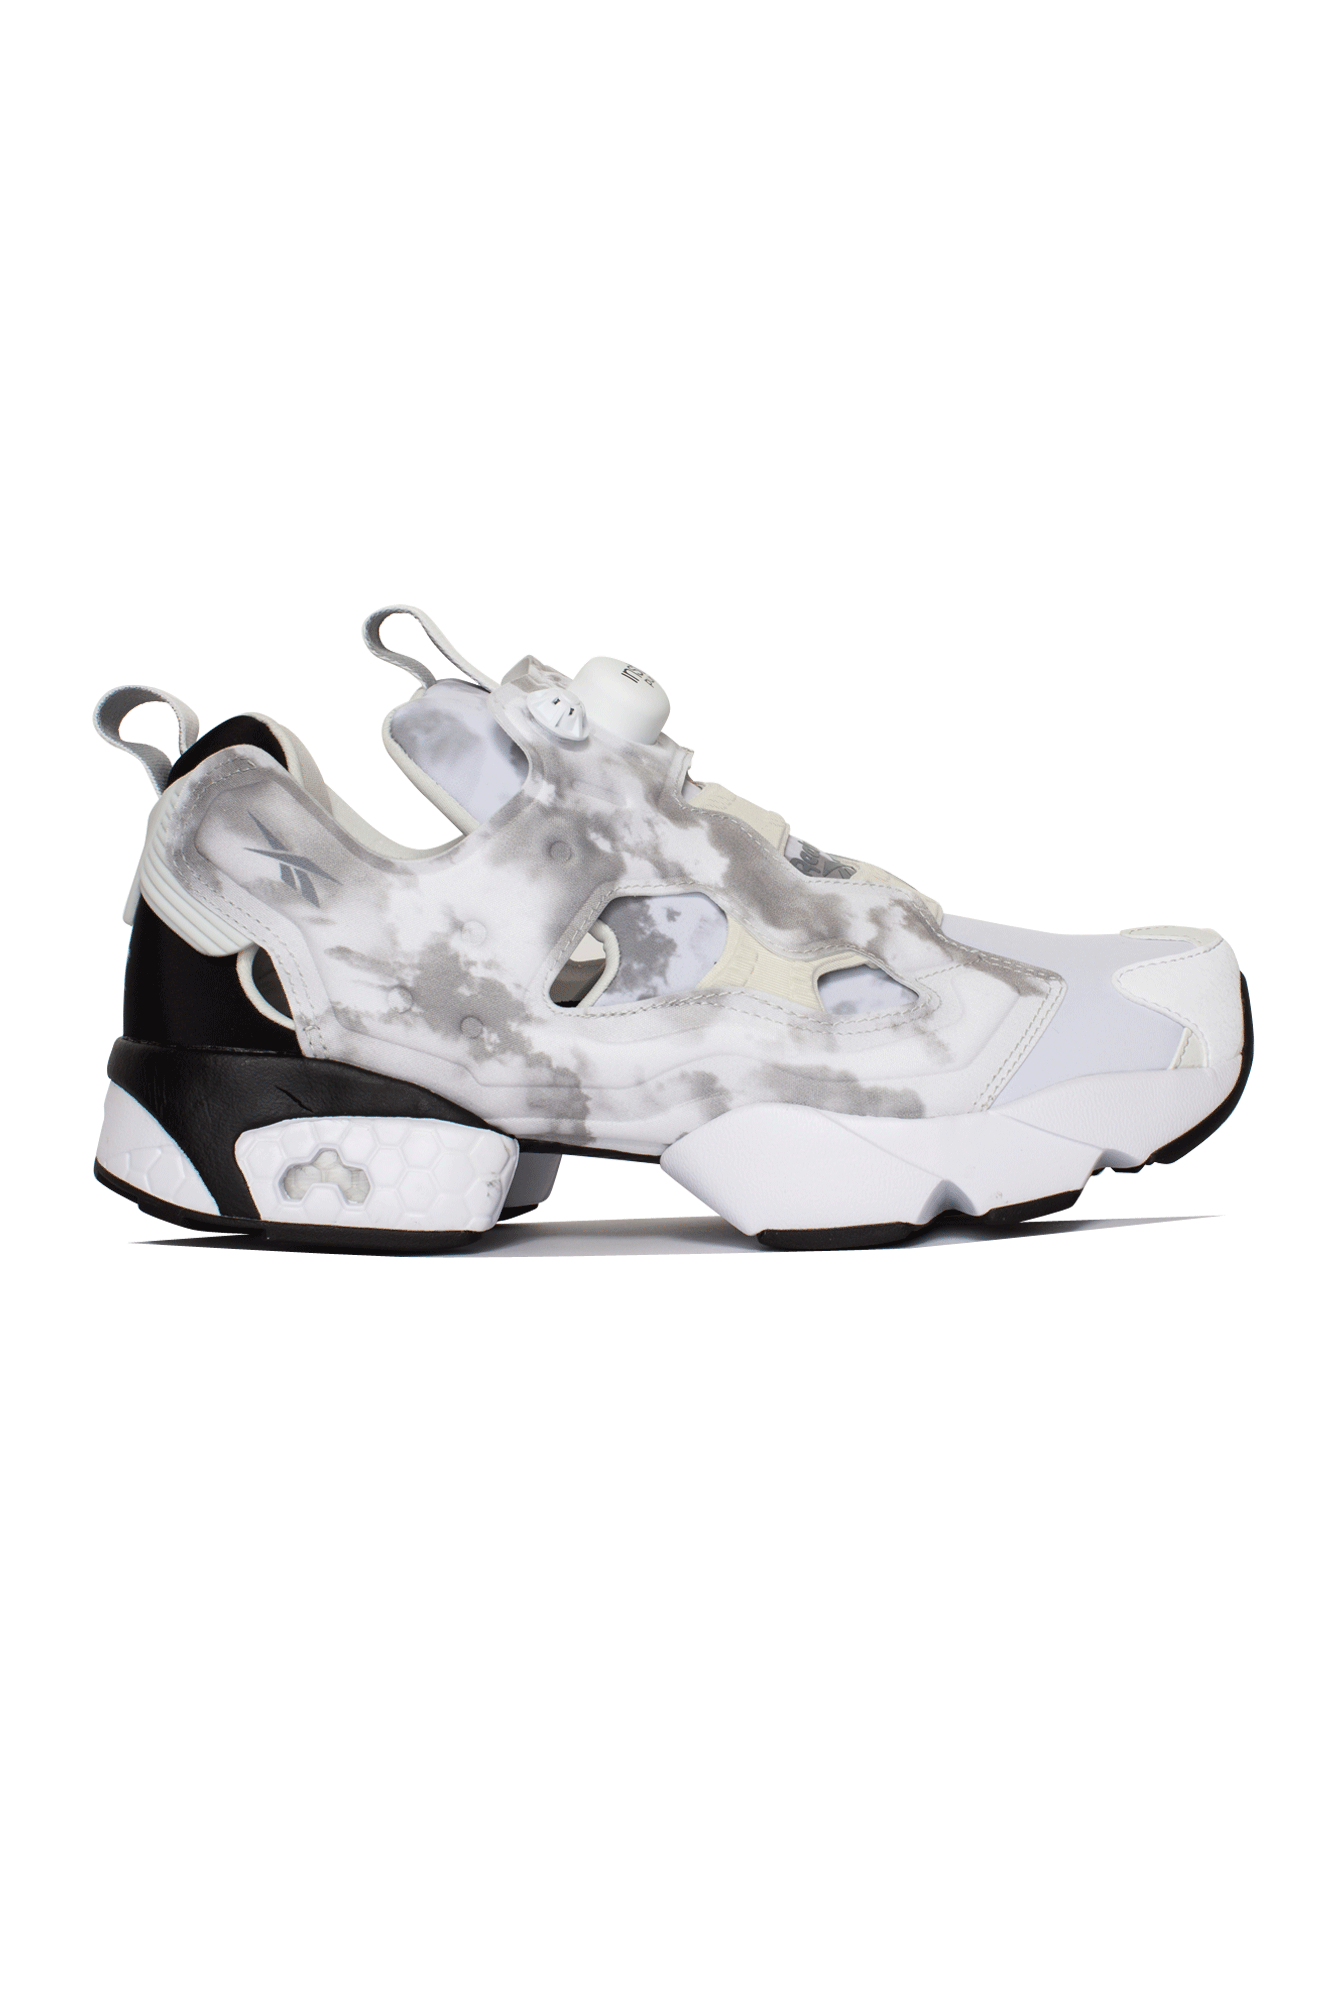 Reebok Sneakers Instapump Fury OG NM White FW7700#000#WHTBLK#7,5 - One Block Down